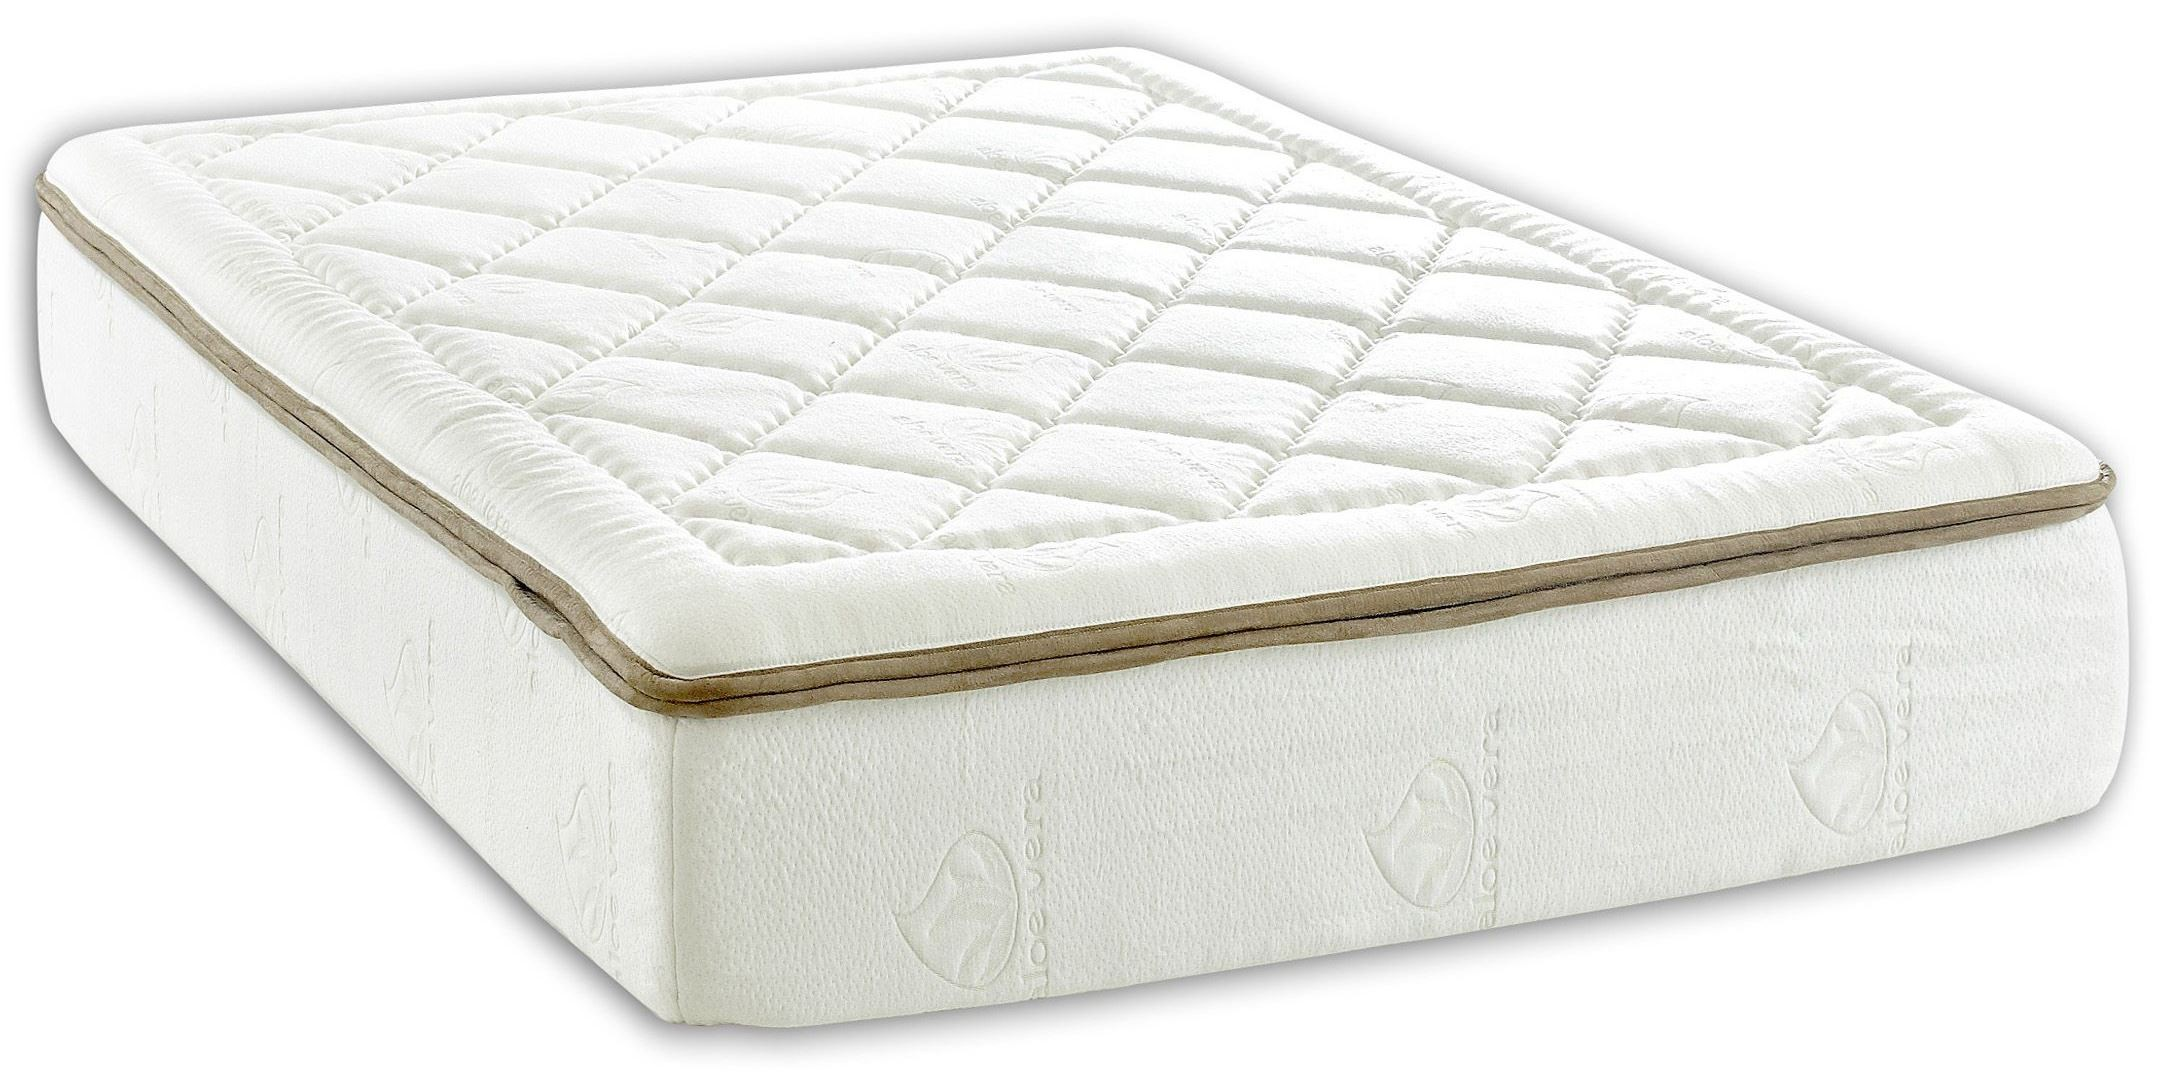 Dream Weaver Twin Extra Long Mattress Drmwvrtx 012013114964 Klaussner